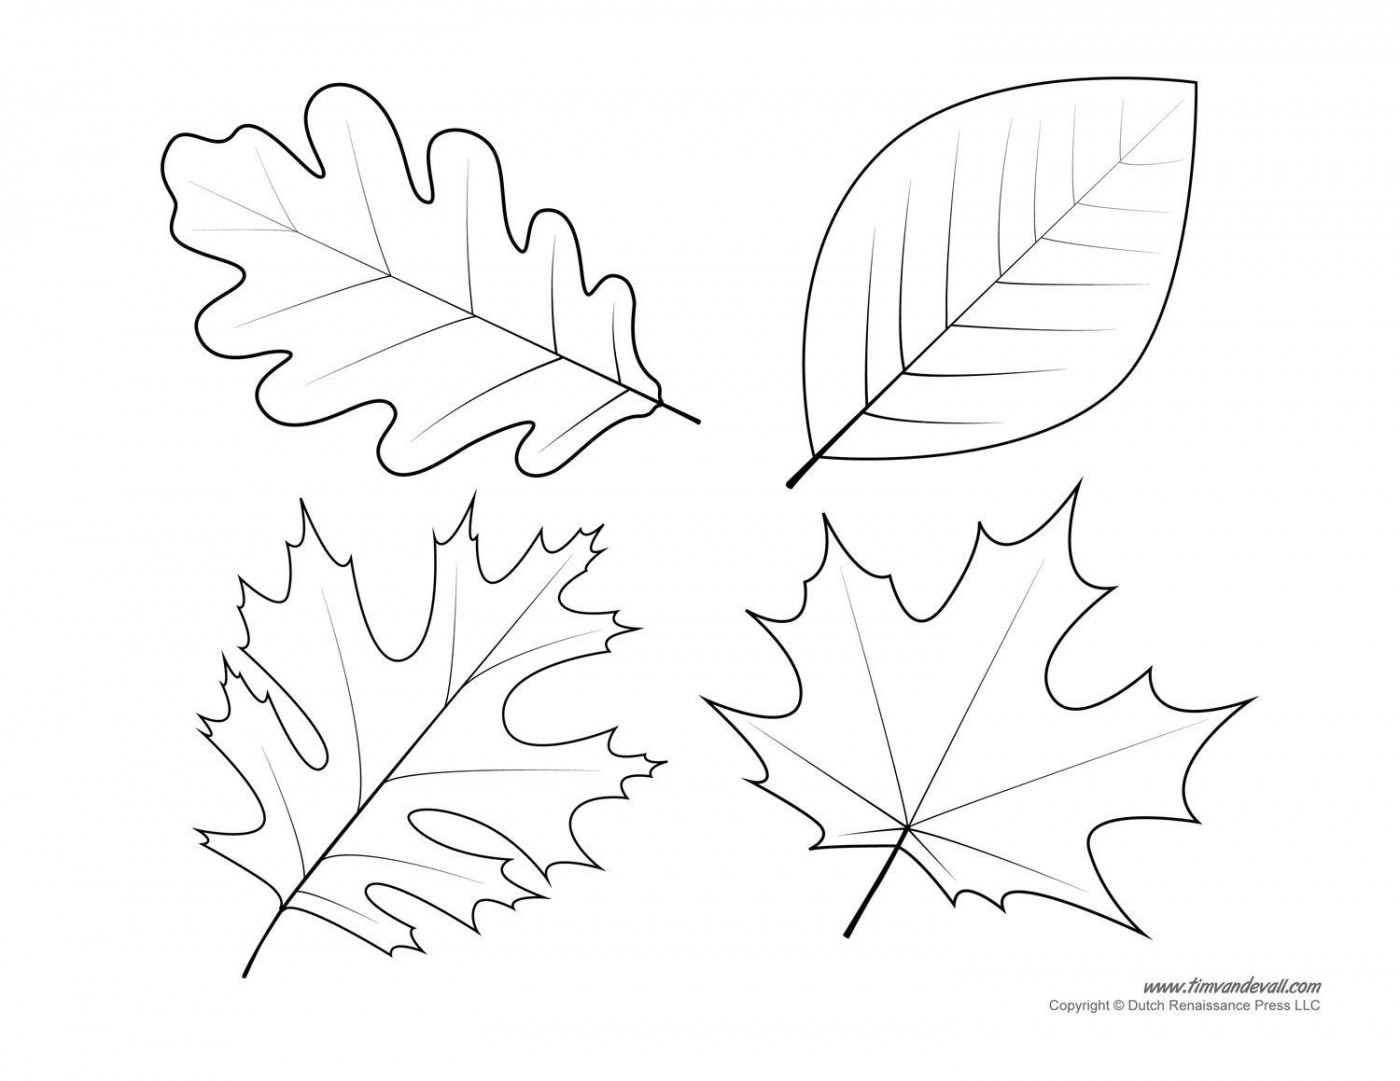 000 Stupendou Blank Leaf Template With Line Inspiration  Printable1400